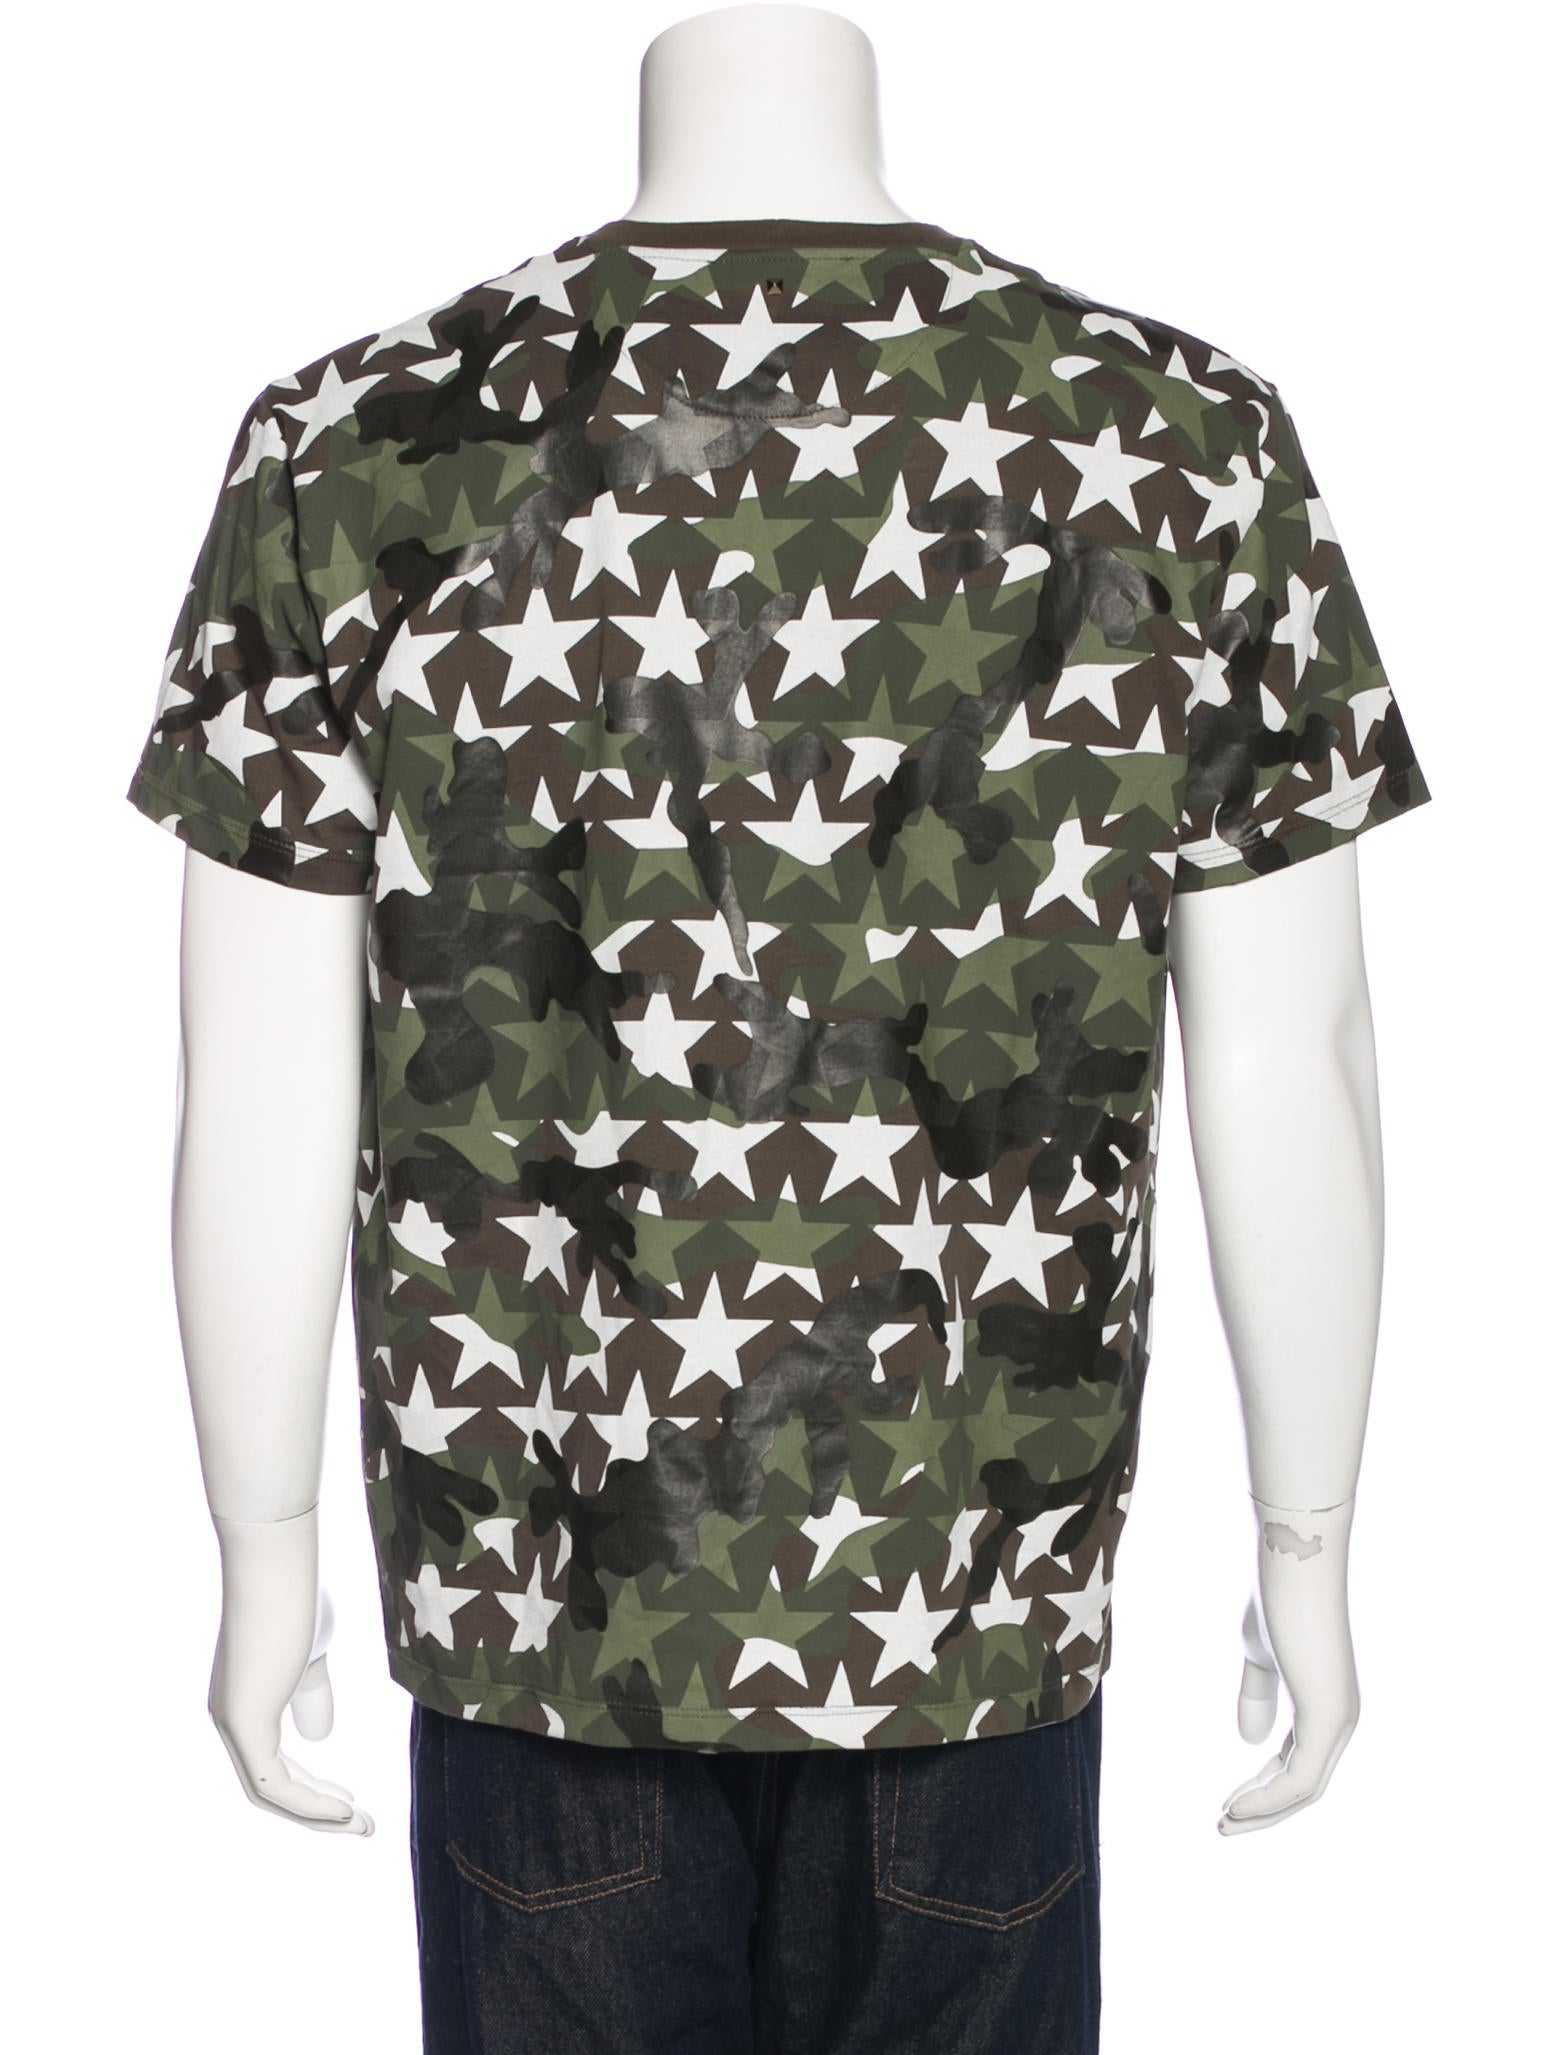 Valentino camouflage star print t shirt w tags clothing for Camouflage t shirt printing